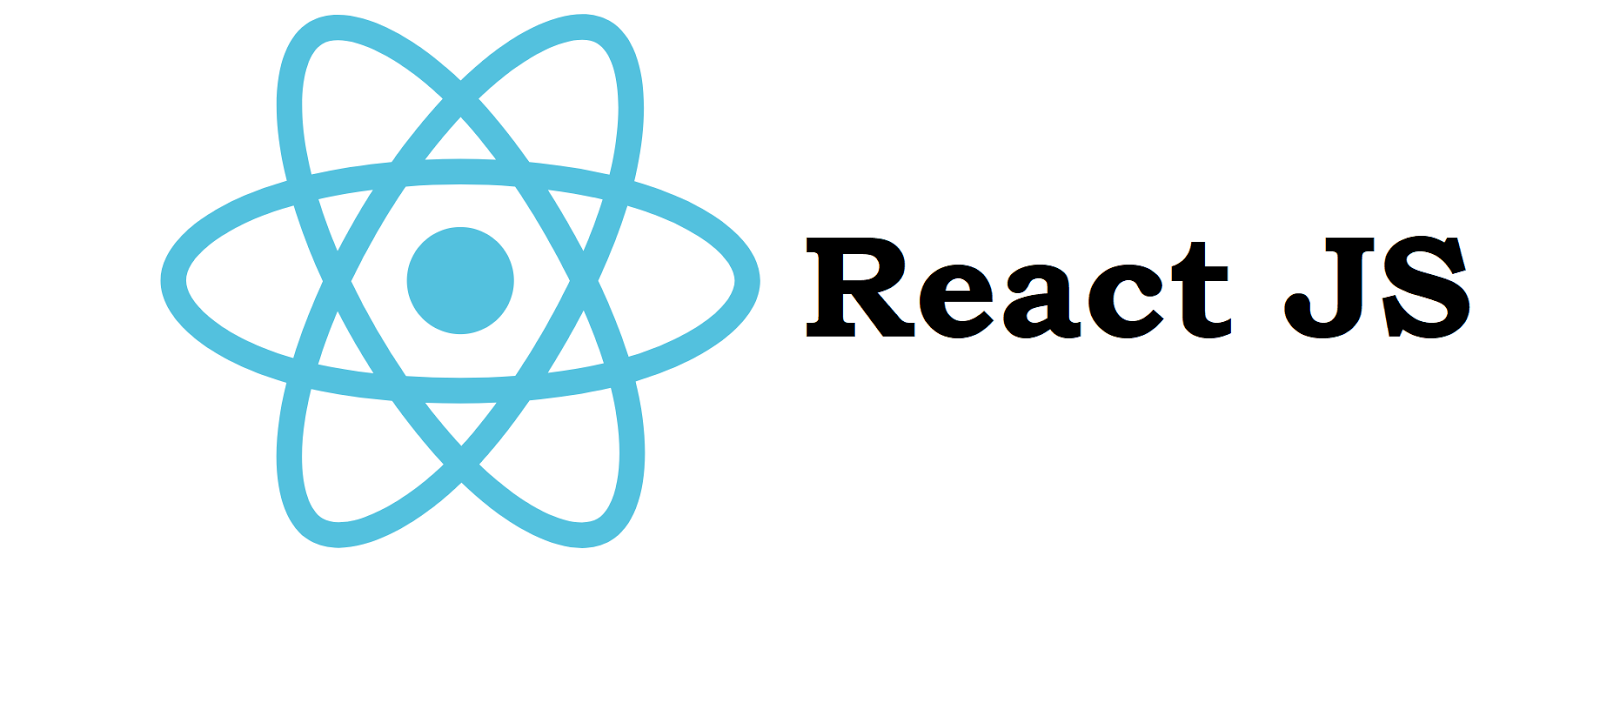 best react js book